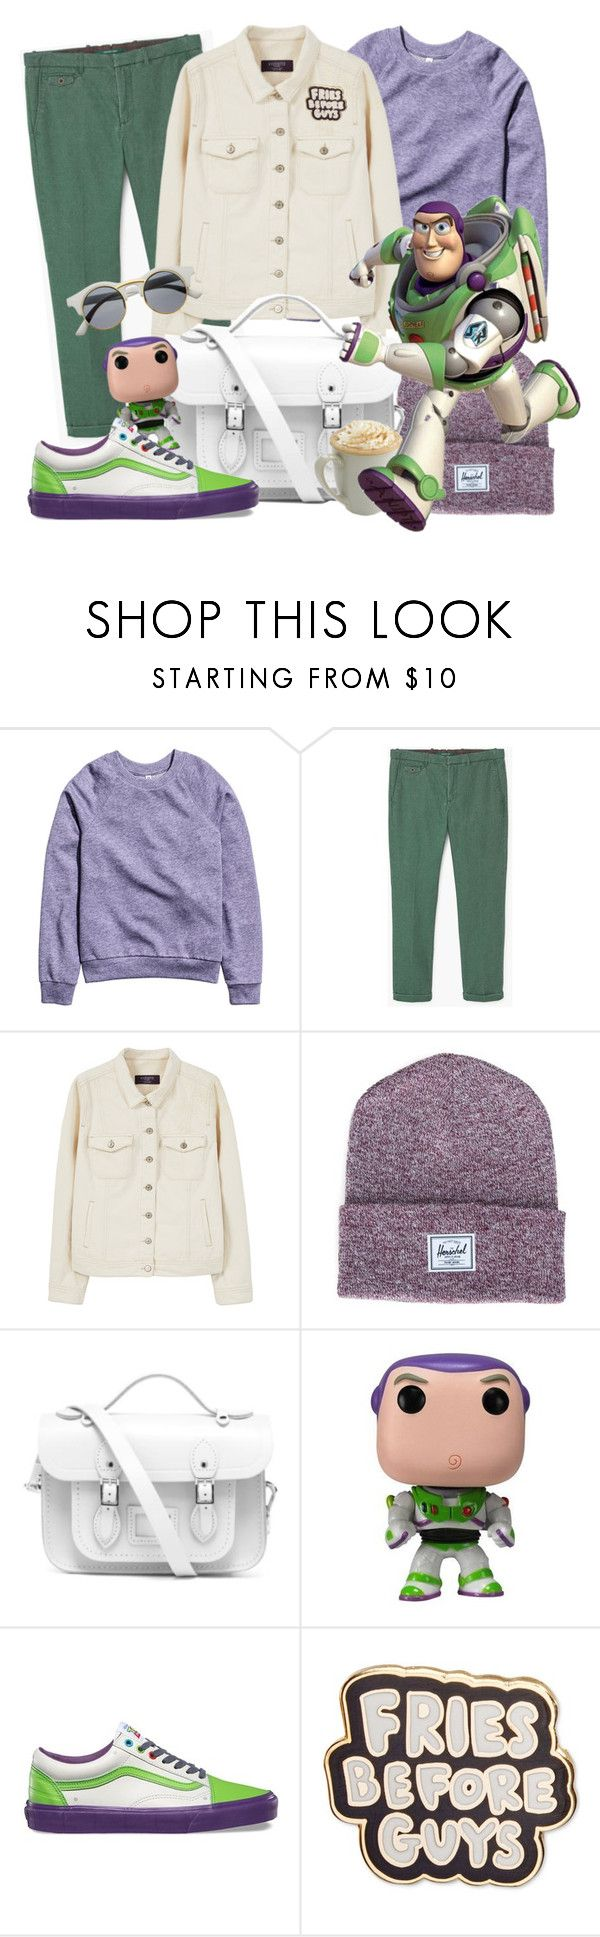 """Disney's - Buzz Lightyear"" by tdwsammy ❤ liked on Polyvore featuring H&M, MANGO MAN, Violeta by Mango, Herschel Supply Co., The Cambridge Satchel Company, Dulce, Disney, Vans, ban.do and Retrò"